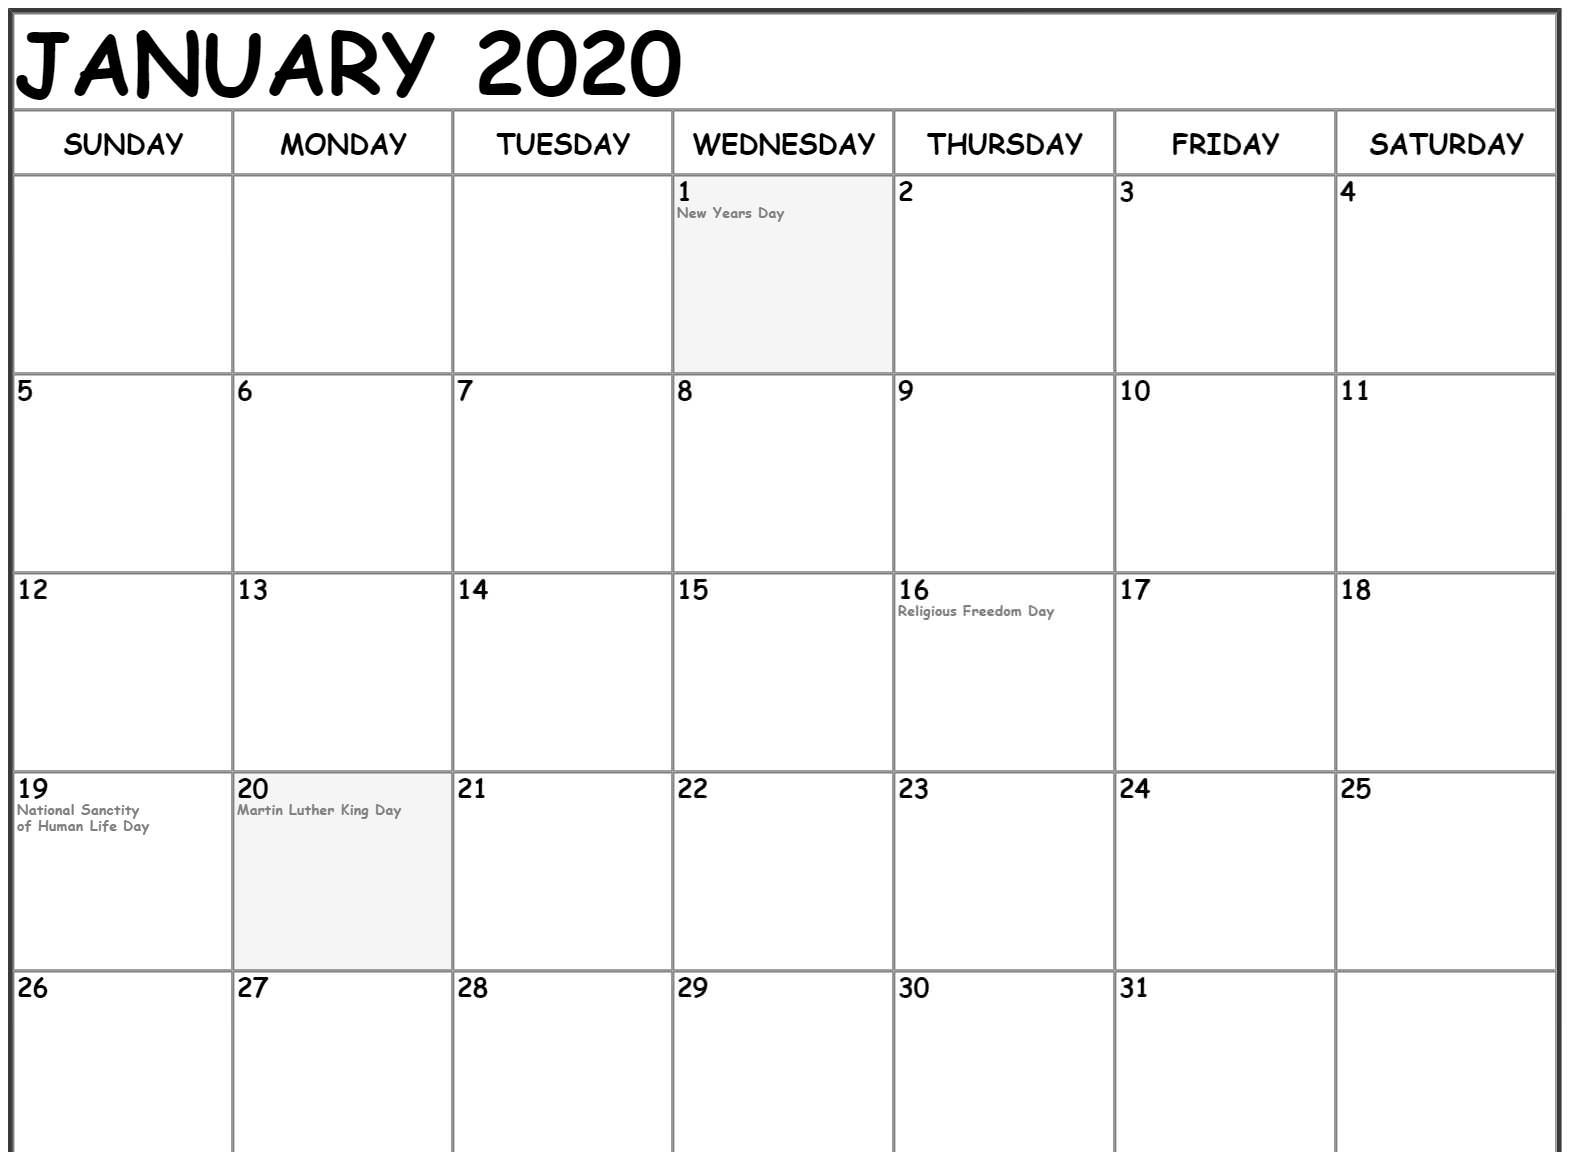 January 2020 Calendar Holidays Template Holiday Calendar